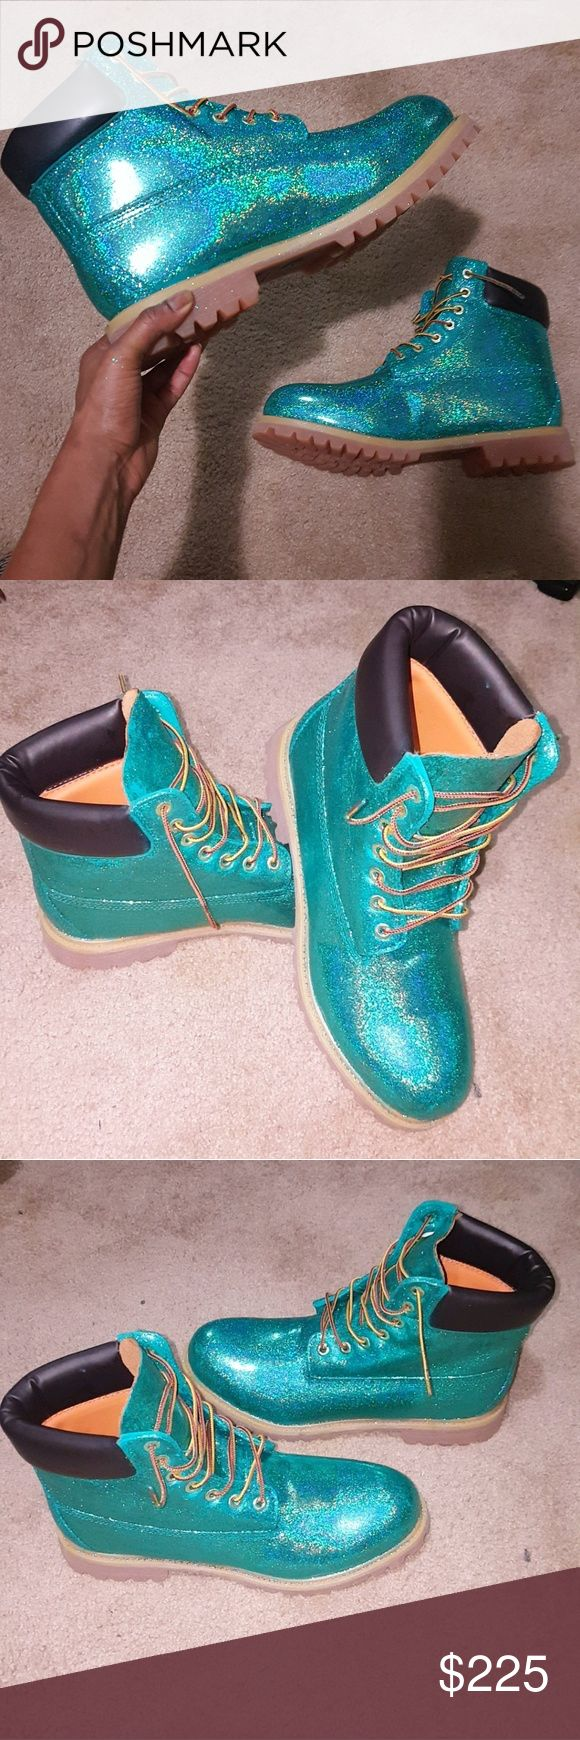 Customized Timberland Boots Size 12 Mens Torquoise Glittered Timberland Shoes Boots